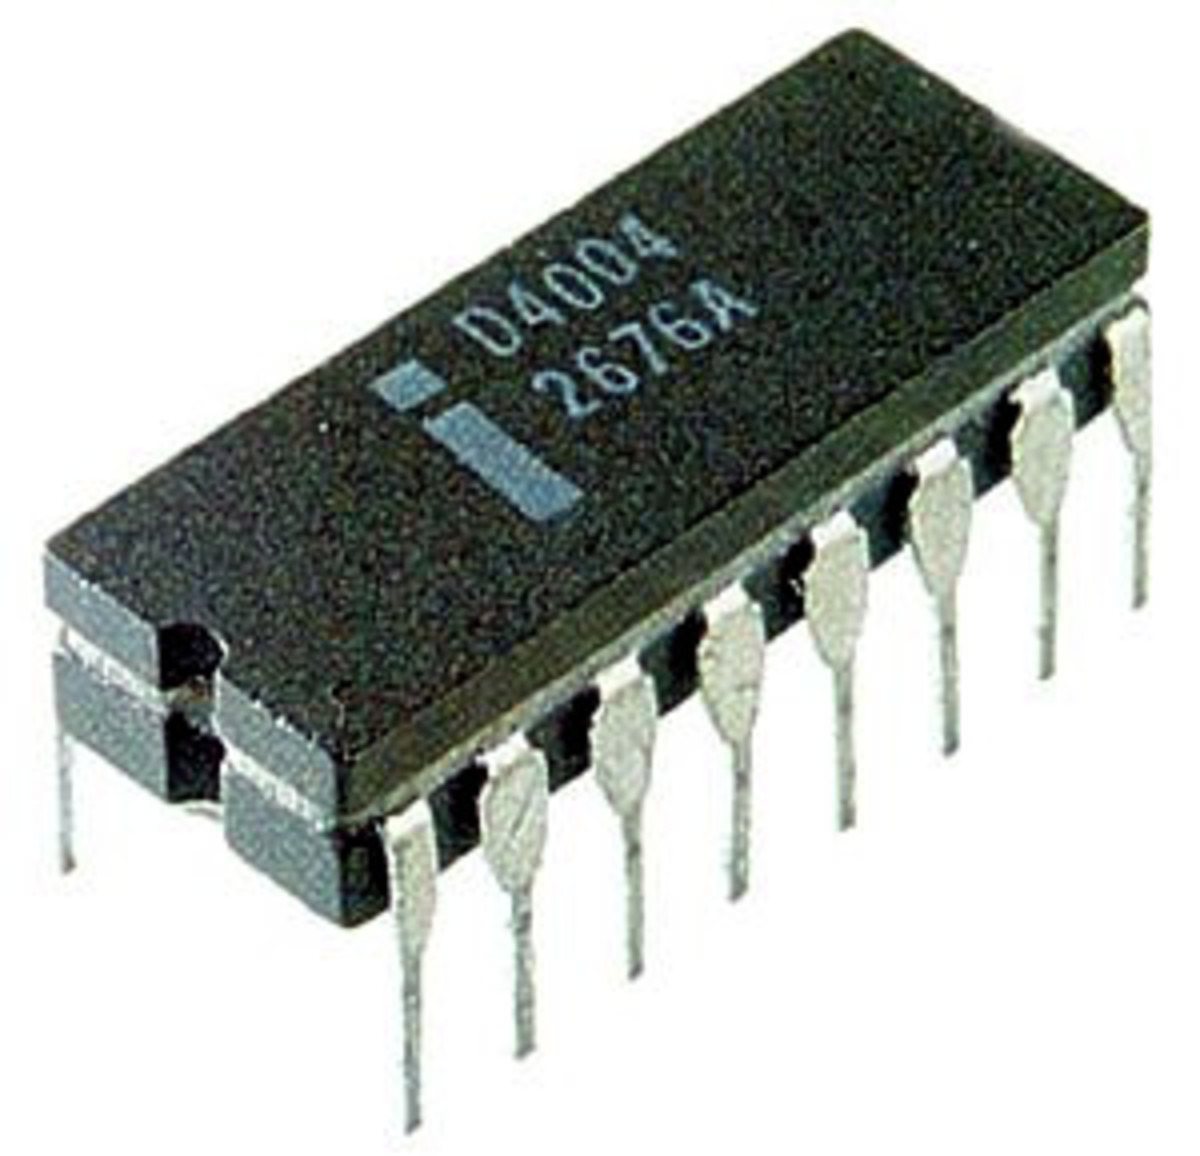 The original Intel 4004 microprocessor.